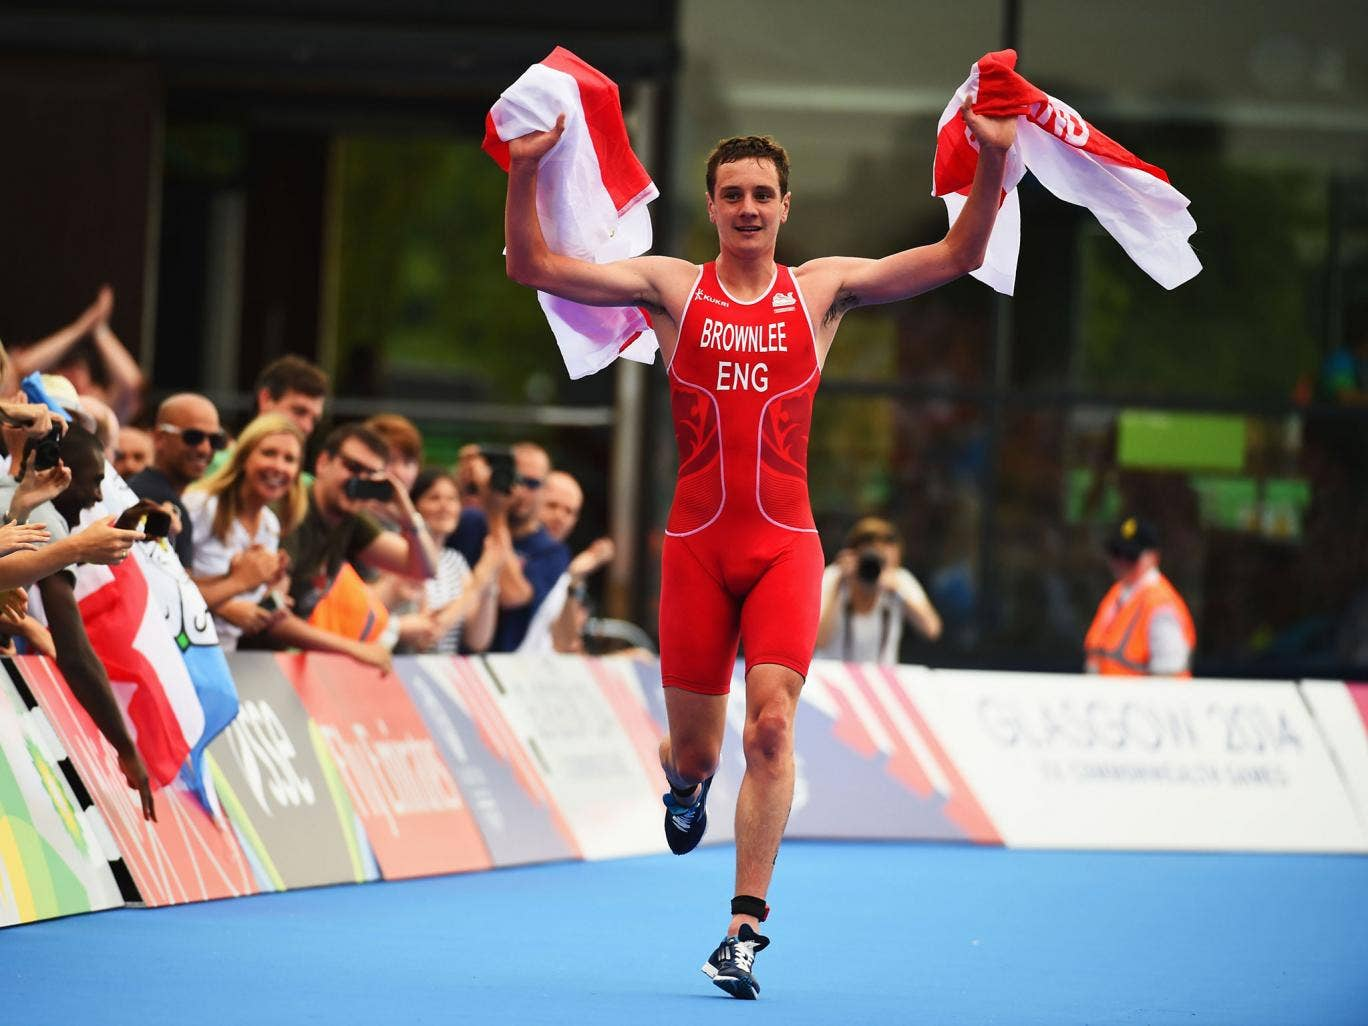 Alistair Brownlee approaches the finishing line to win the mixed triathlon for England